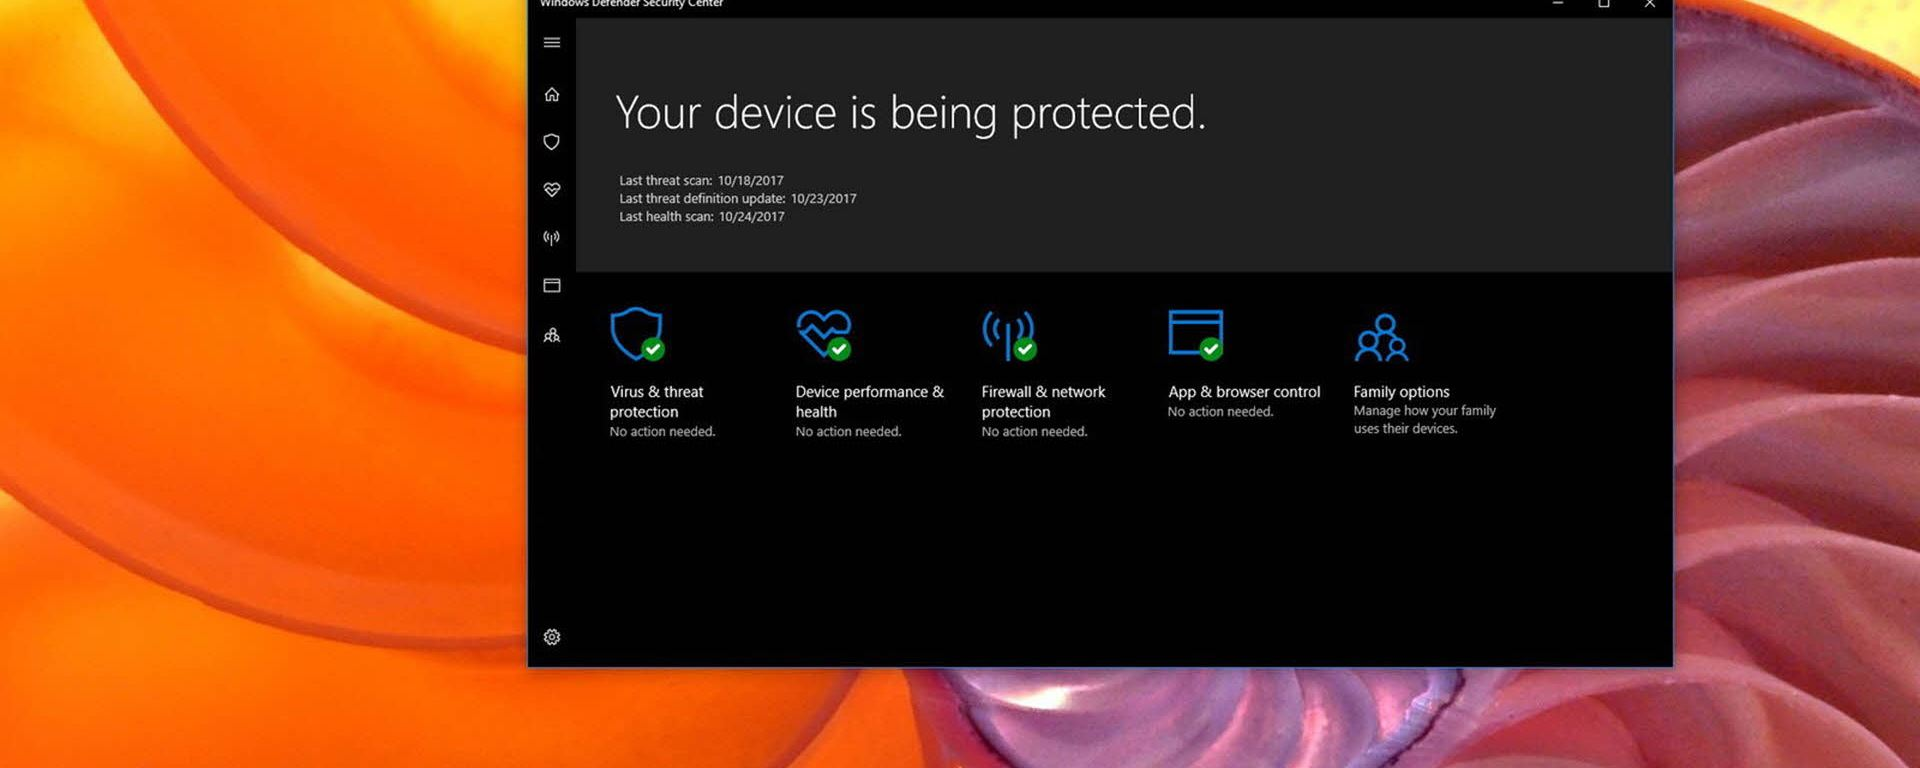 Examen de Windows Defender Offline